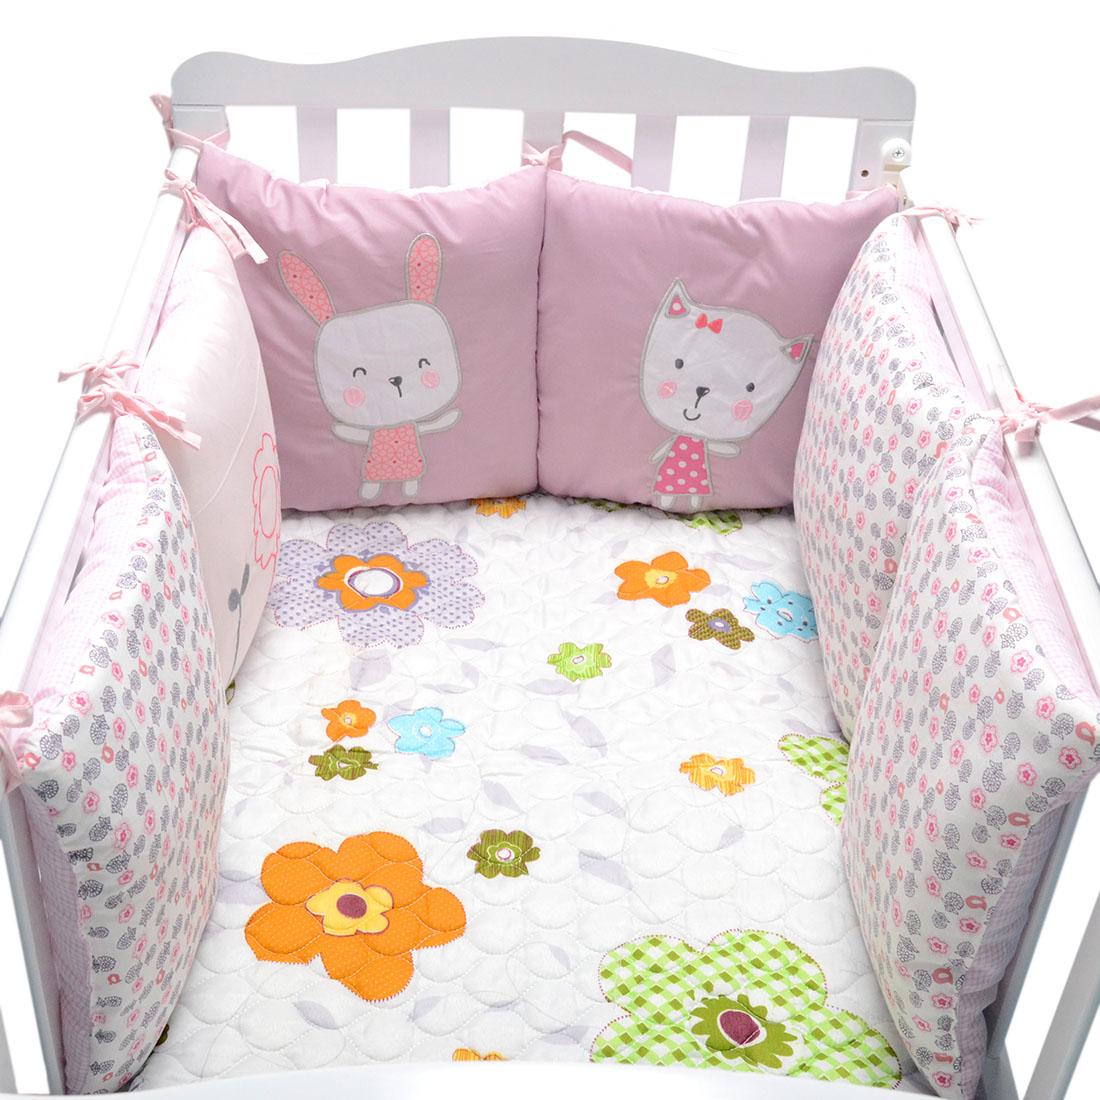 3bumpers+matress+pillow+duvet Promotion Spare No Cost At Any Cost 6pcs Baby Bedding Cribs For Babies Cot Bumper Kit Bed Around Baby Bedding Cot Bumper